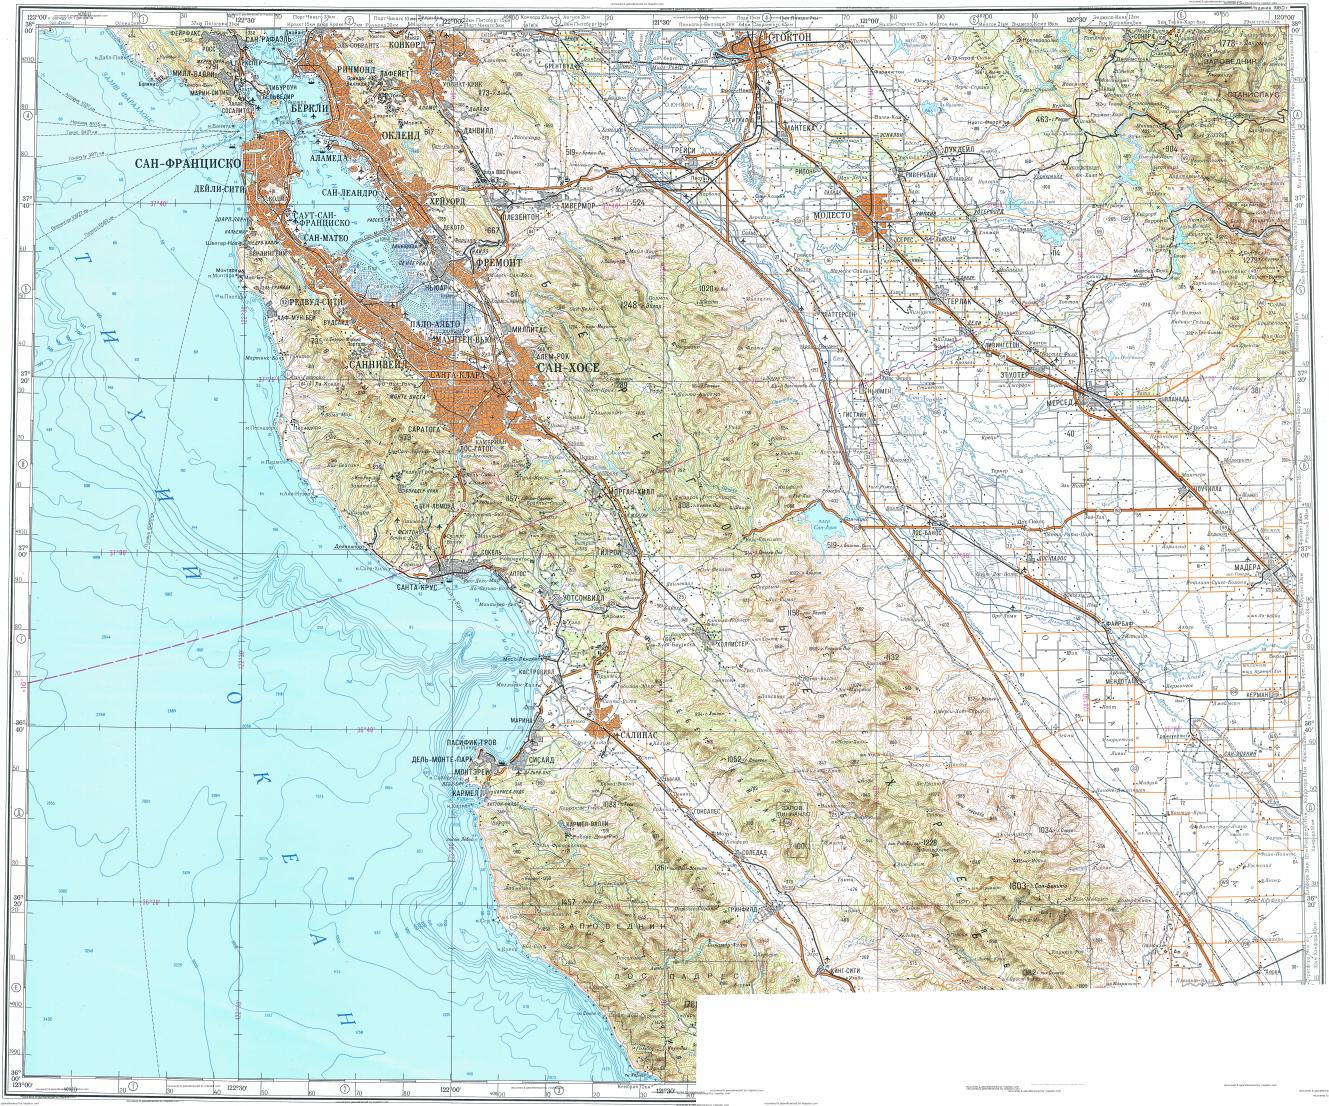 Download topographic map in area of San Francisco Oakland San